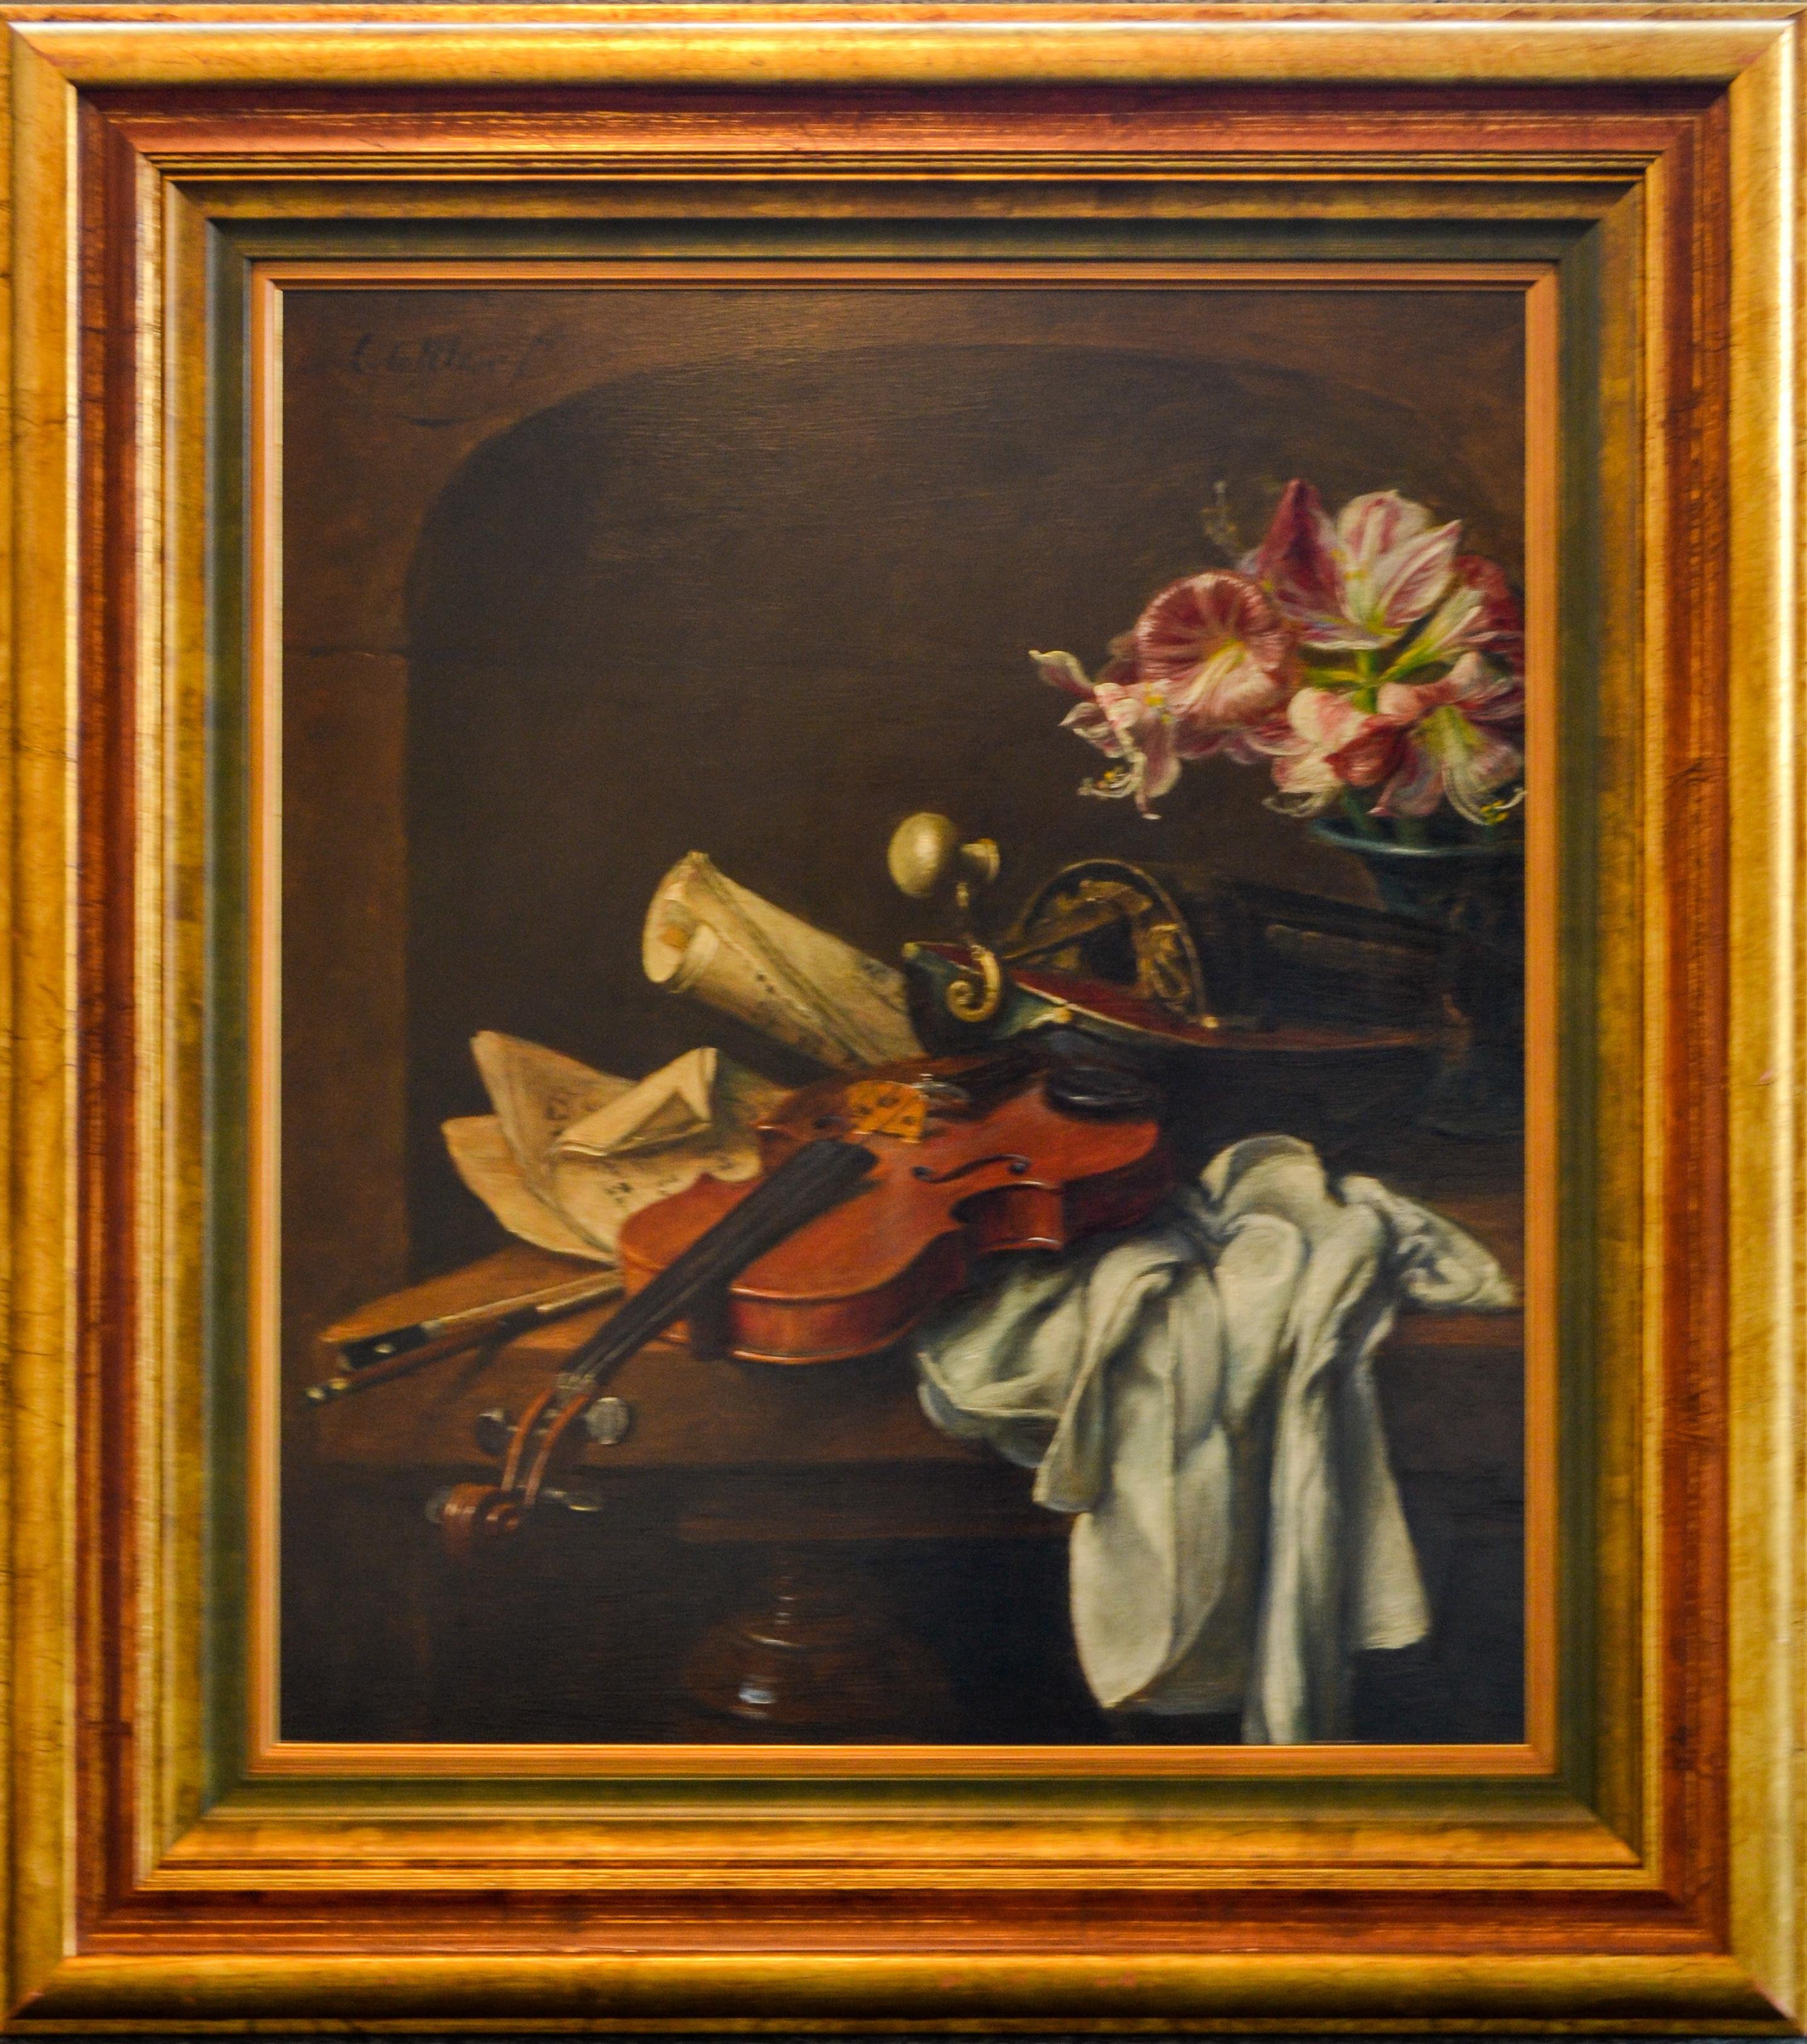 Violin and Flowers - Classic Style Oil Painting by Cornelis Le Mair